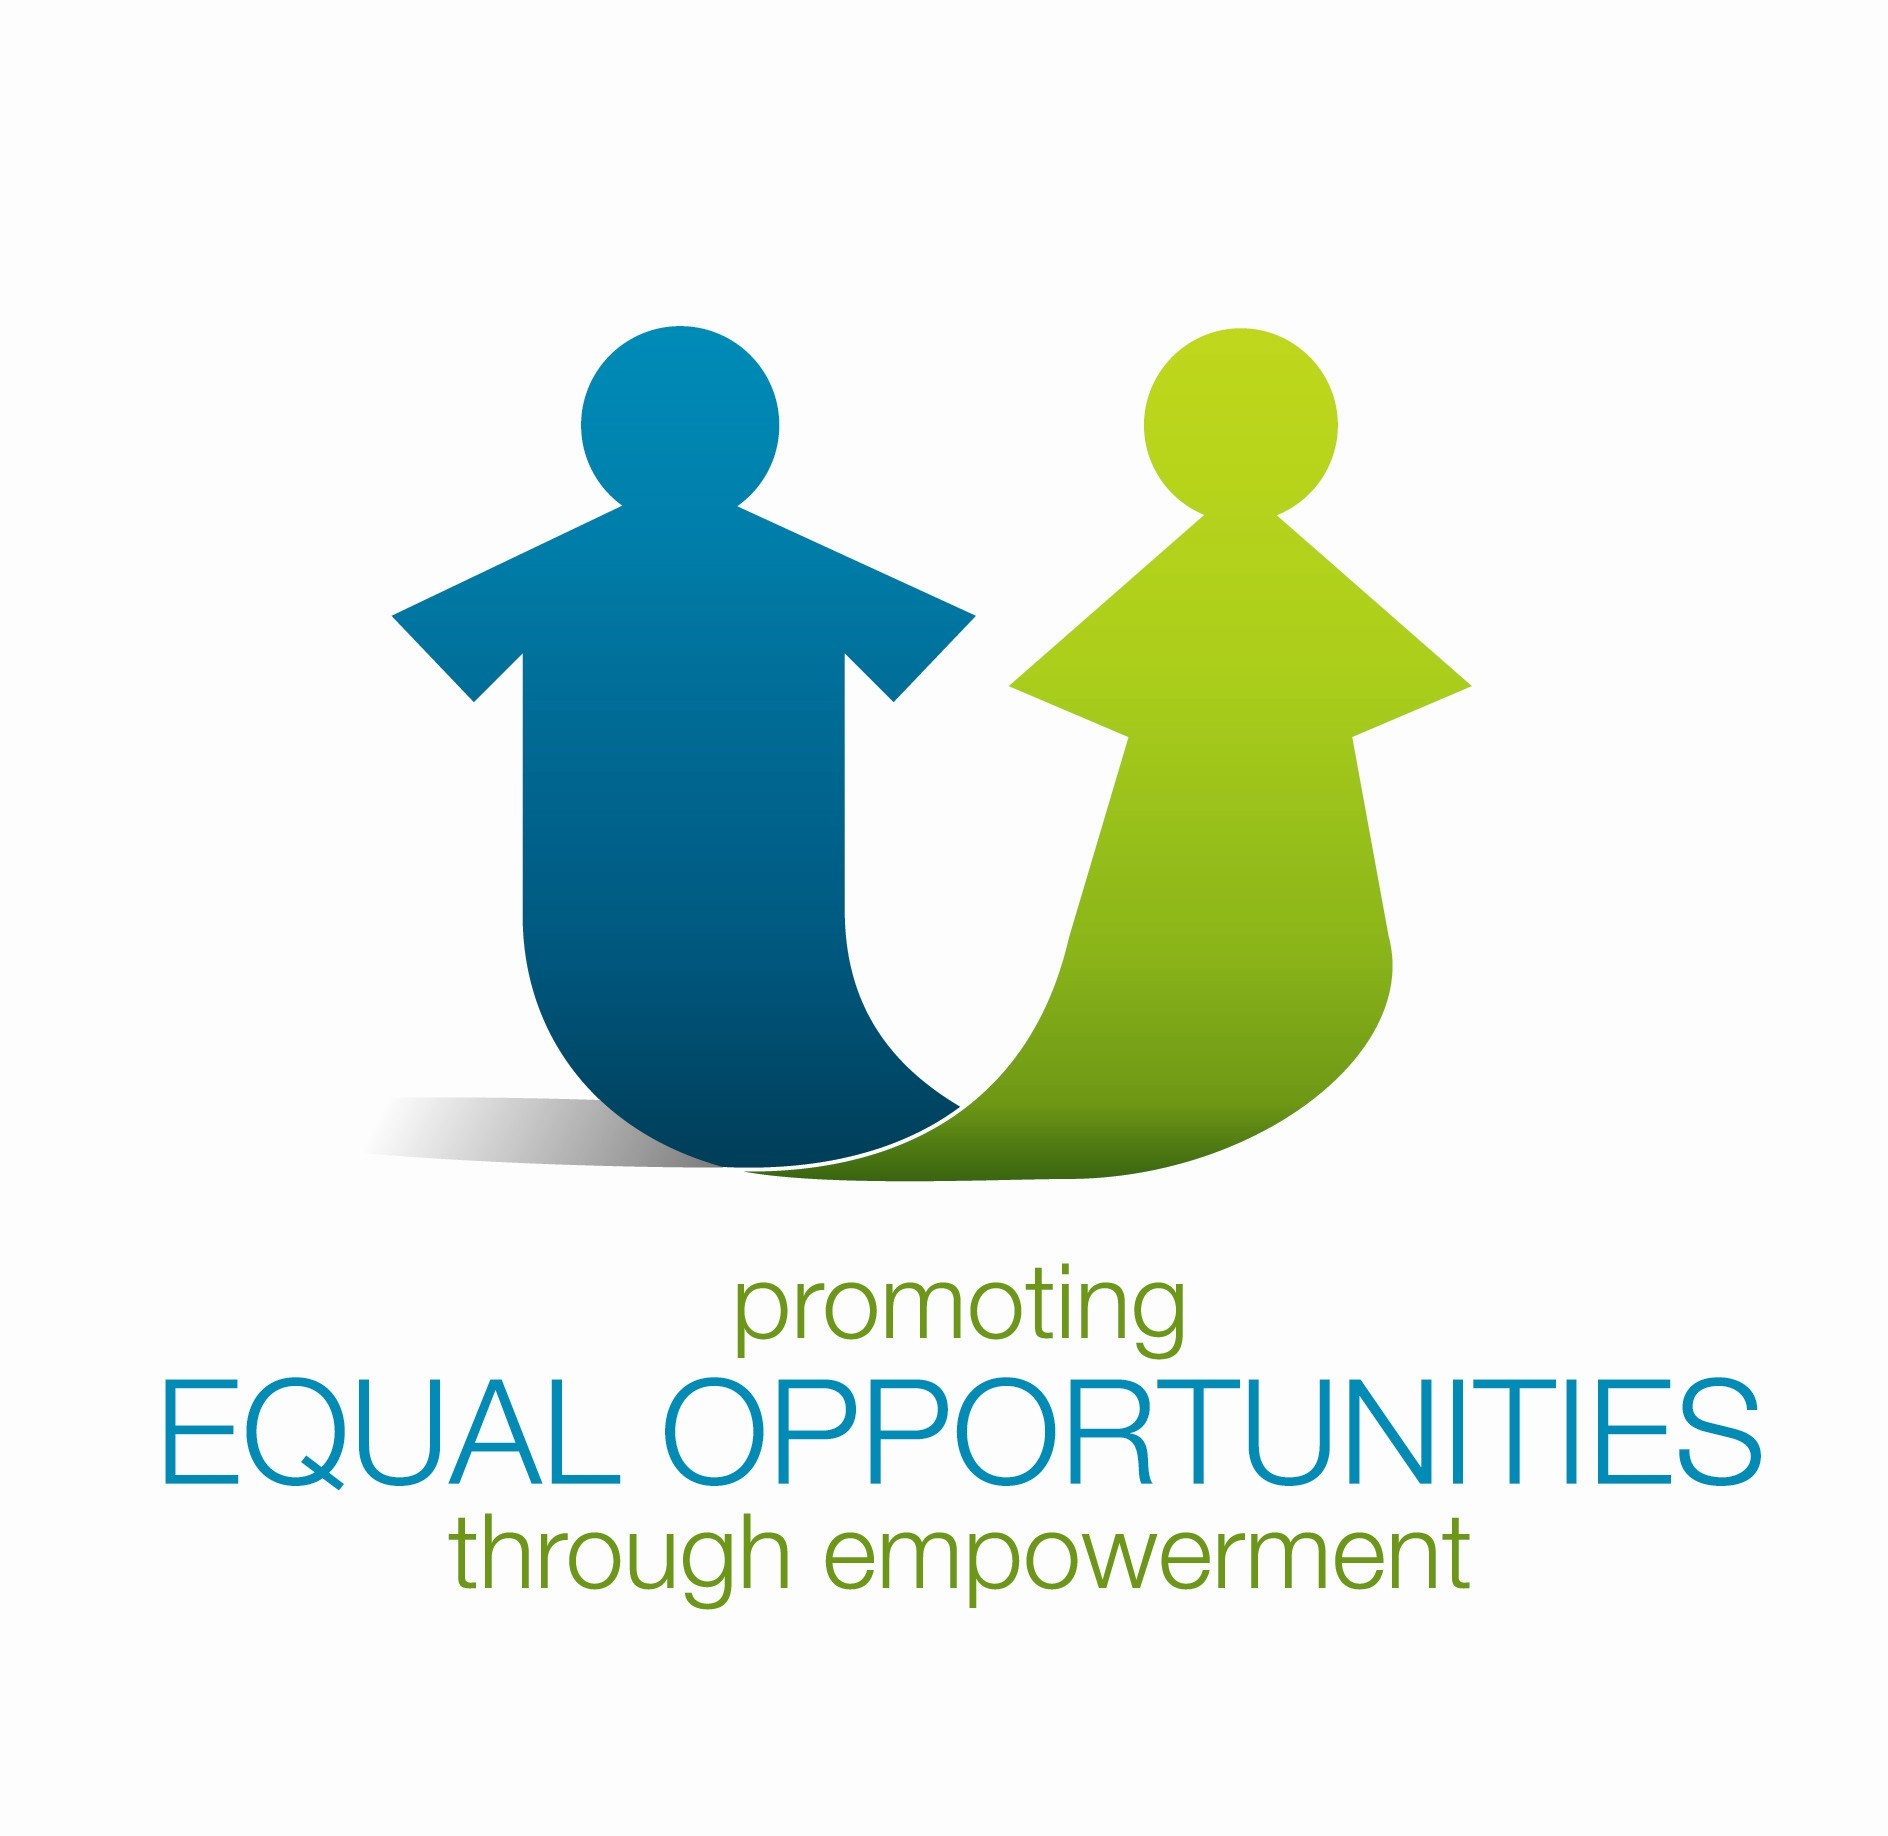 promote equality Gender equality strategy measures taken to promote the advancement of women and objectives for strategic engagement for gender equality promoting gender equality beyond the eu promoting gender equality beyond the eu eu works to promote gender equality across the world though development cooperation.